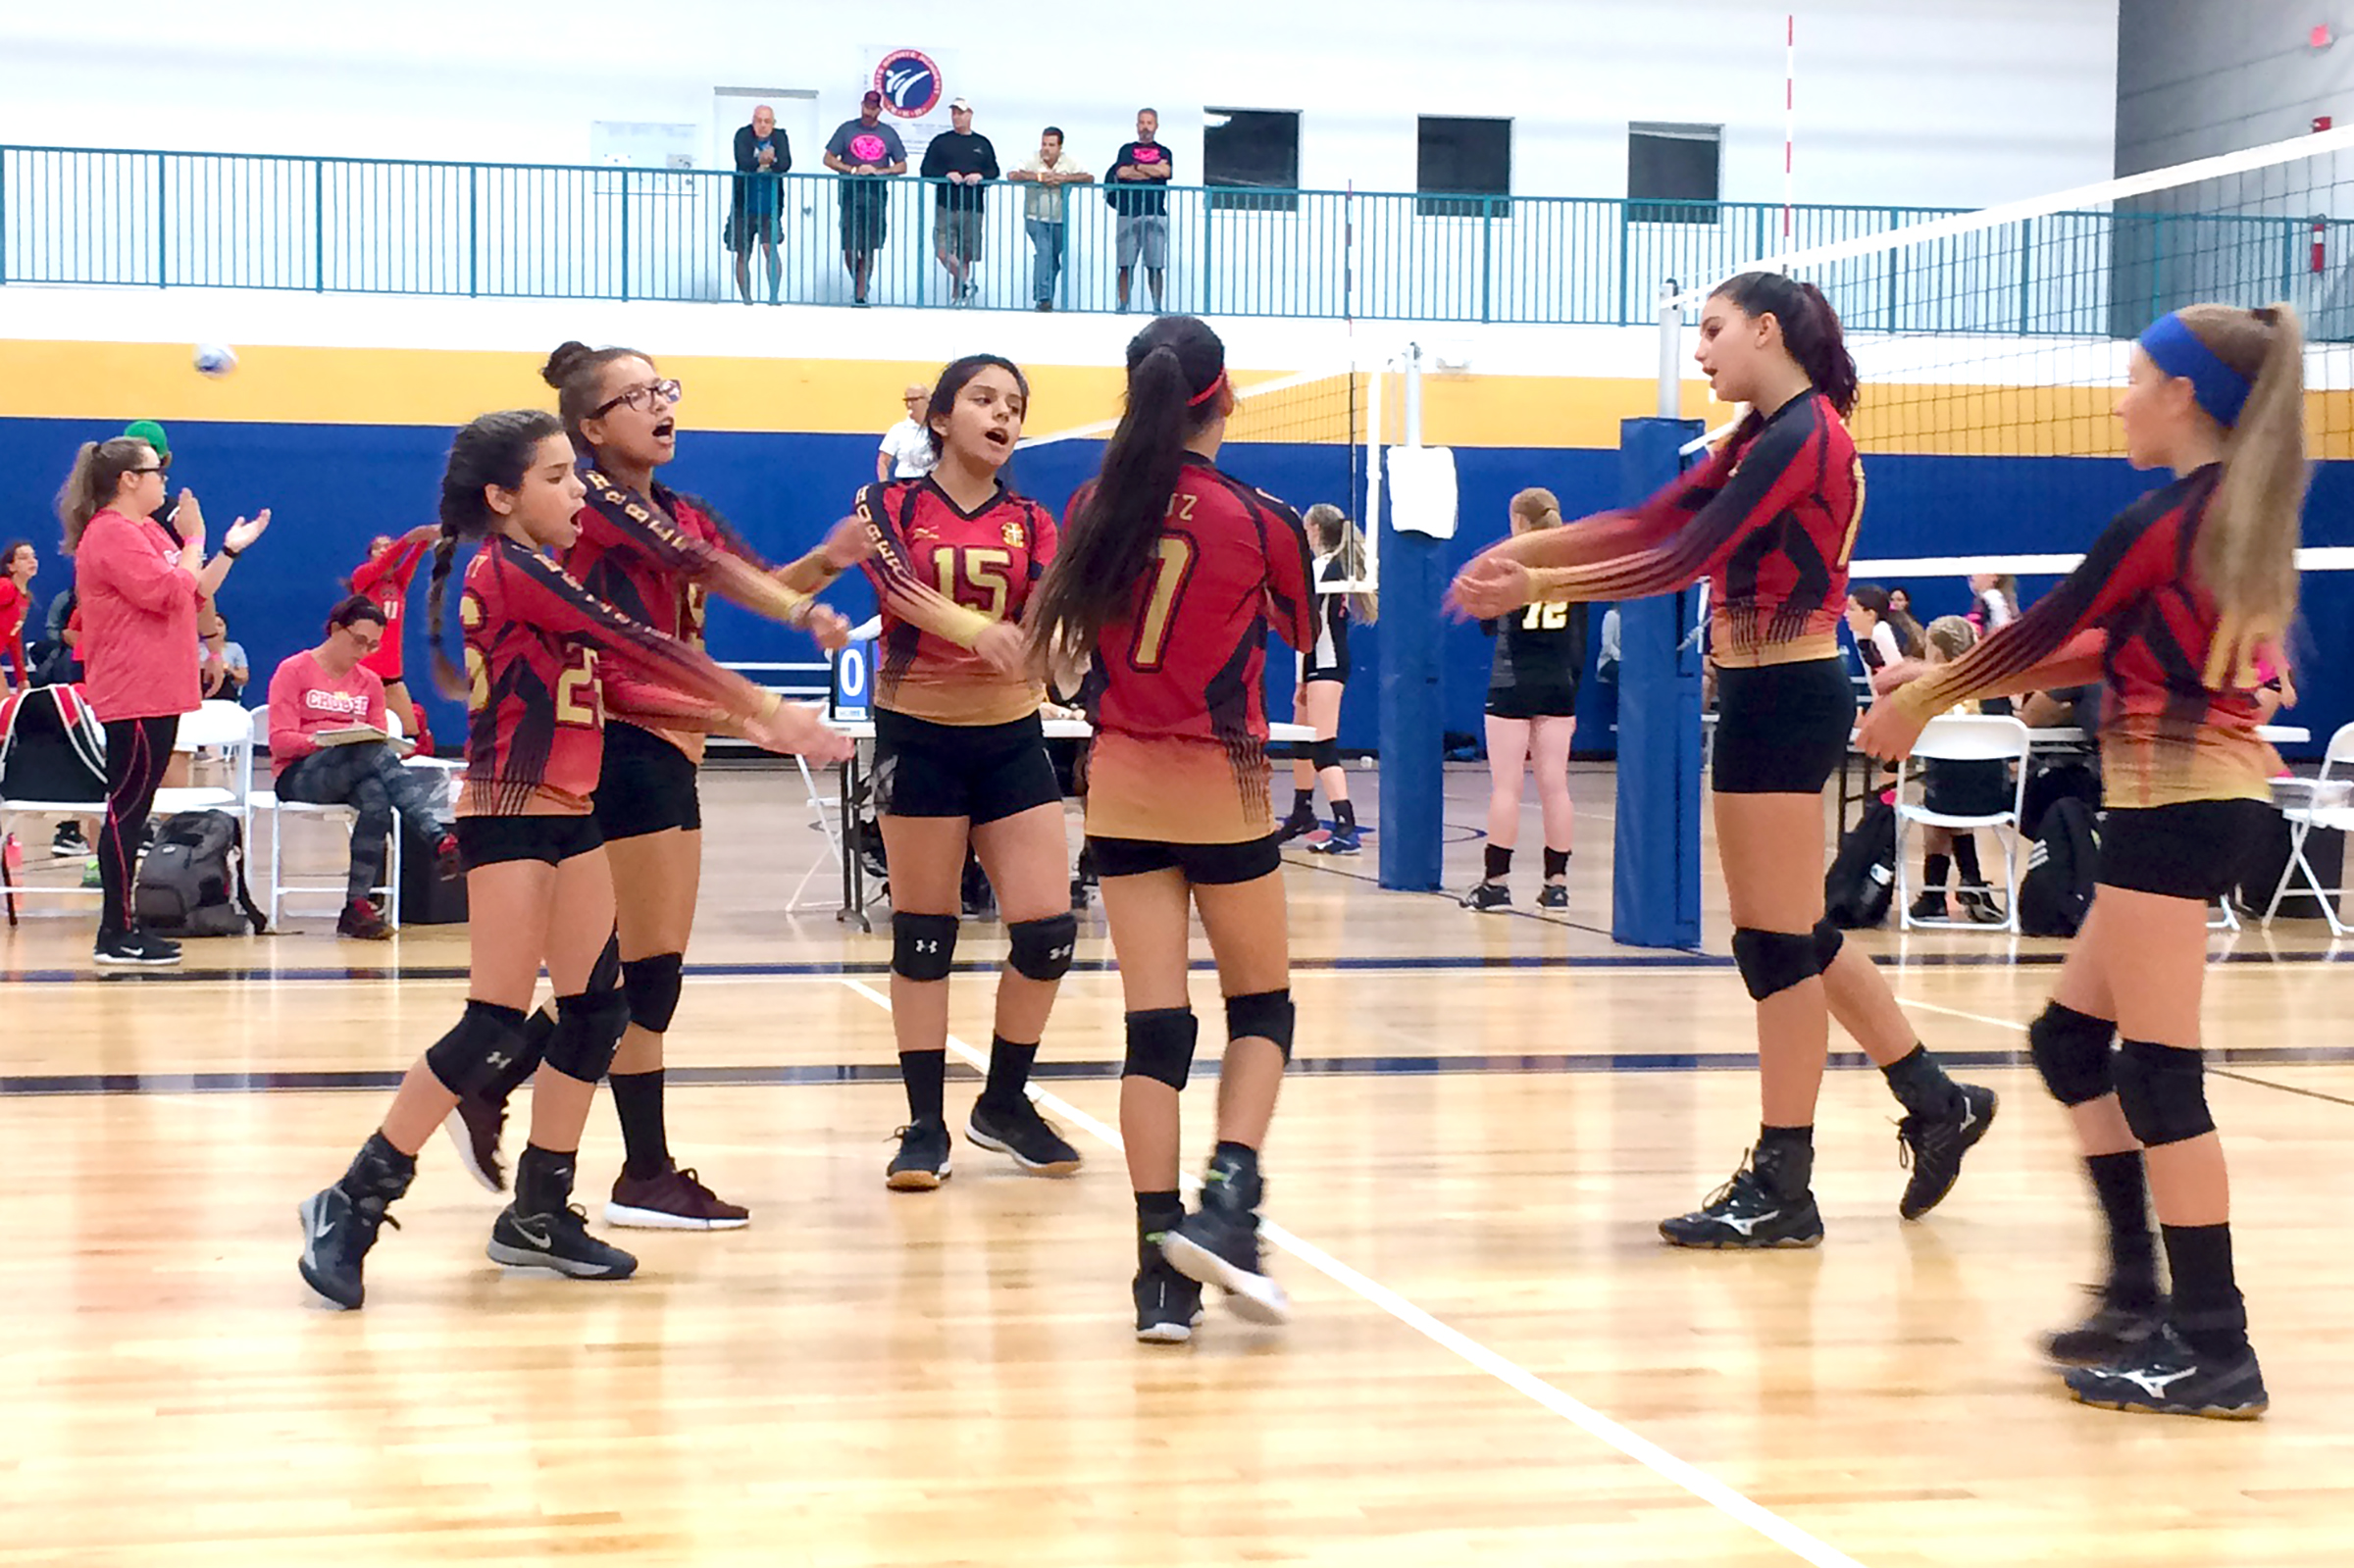 Tribal Players Making Big Impact For Chobee Volleyball Academy The Seminole Tribune